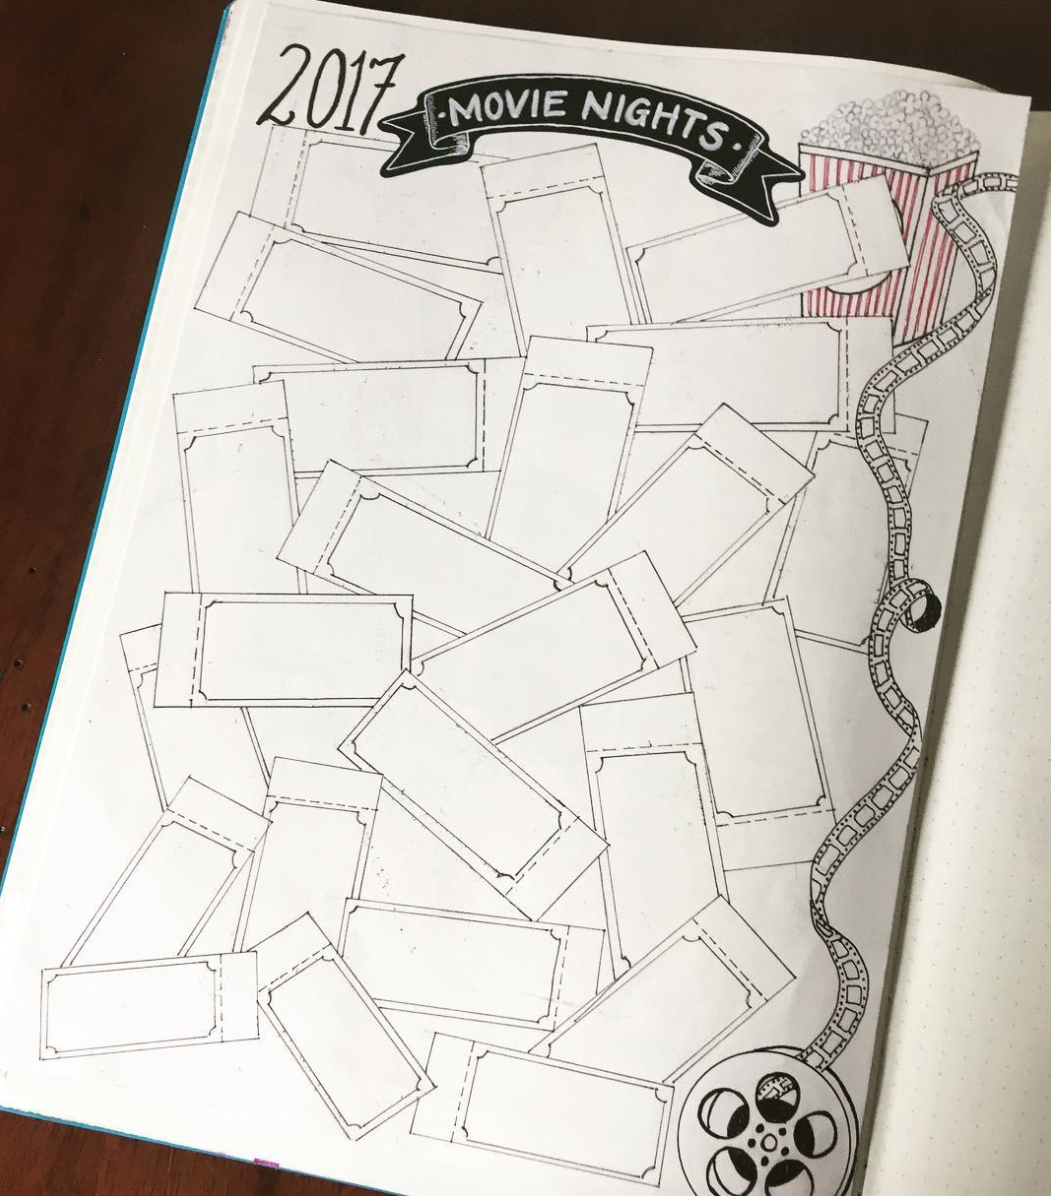 Movie tickets to track movies in a bullet journal